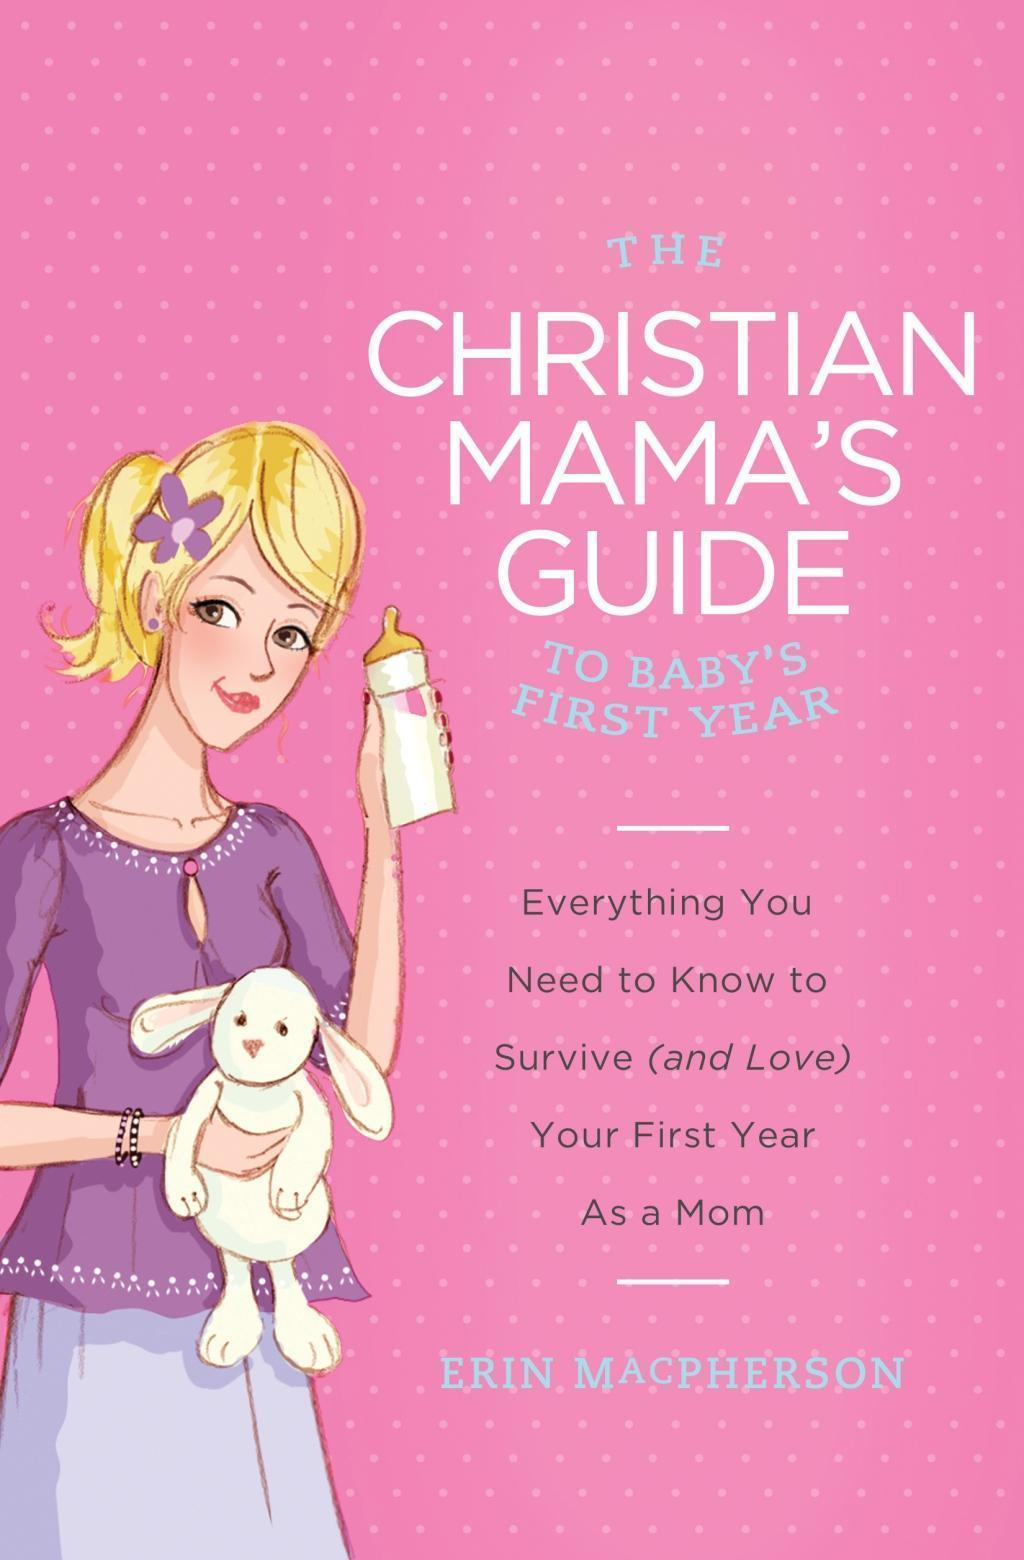 The Christian Mama's Guide to Baby's First Year